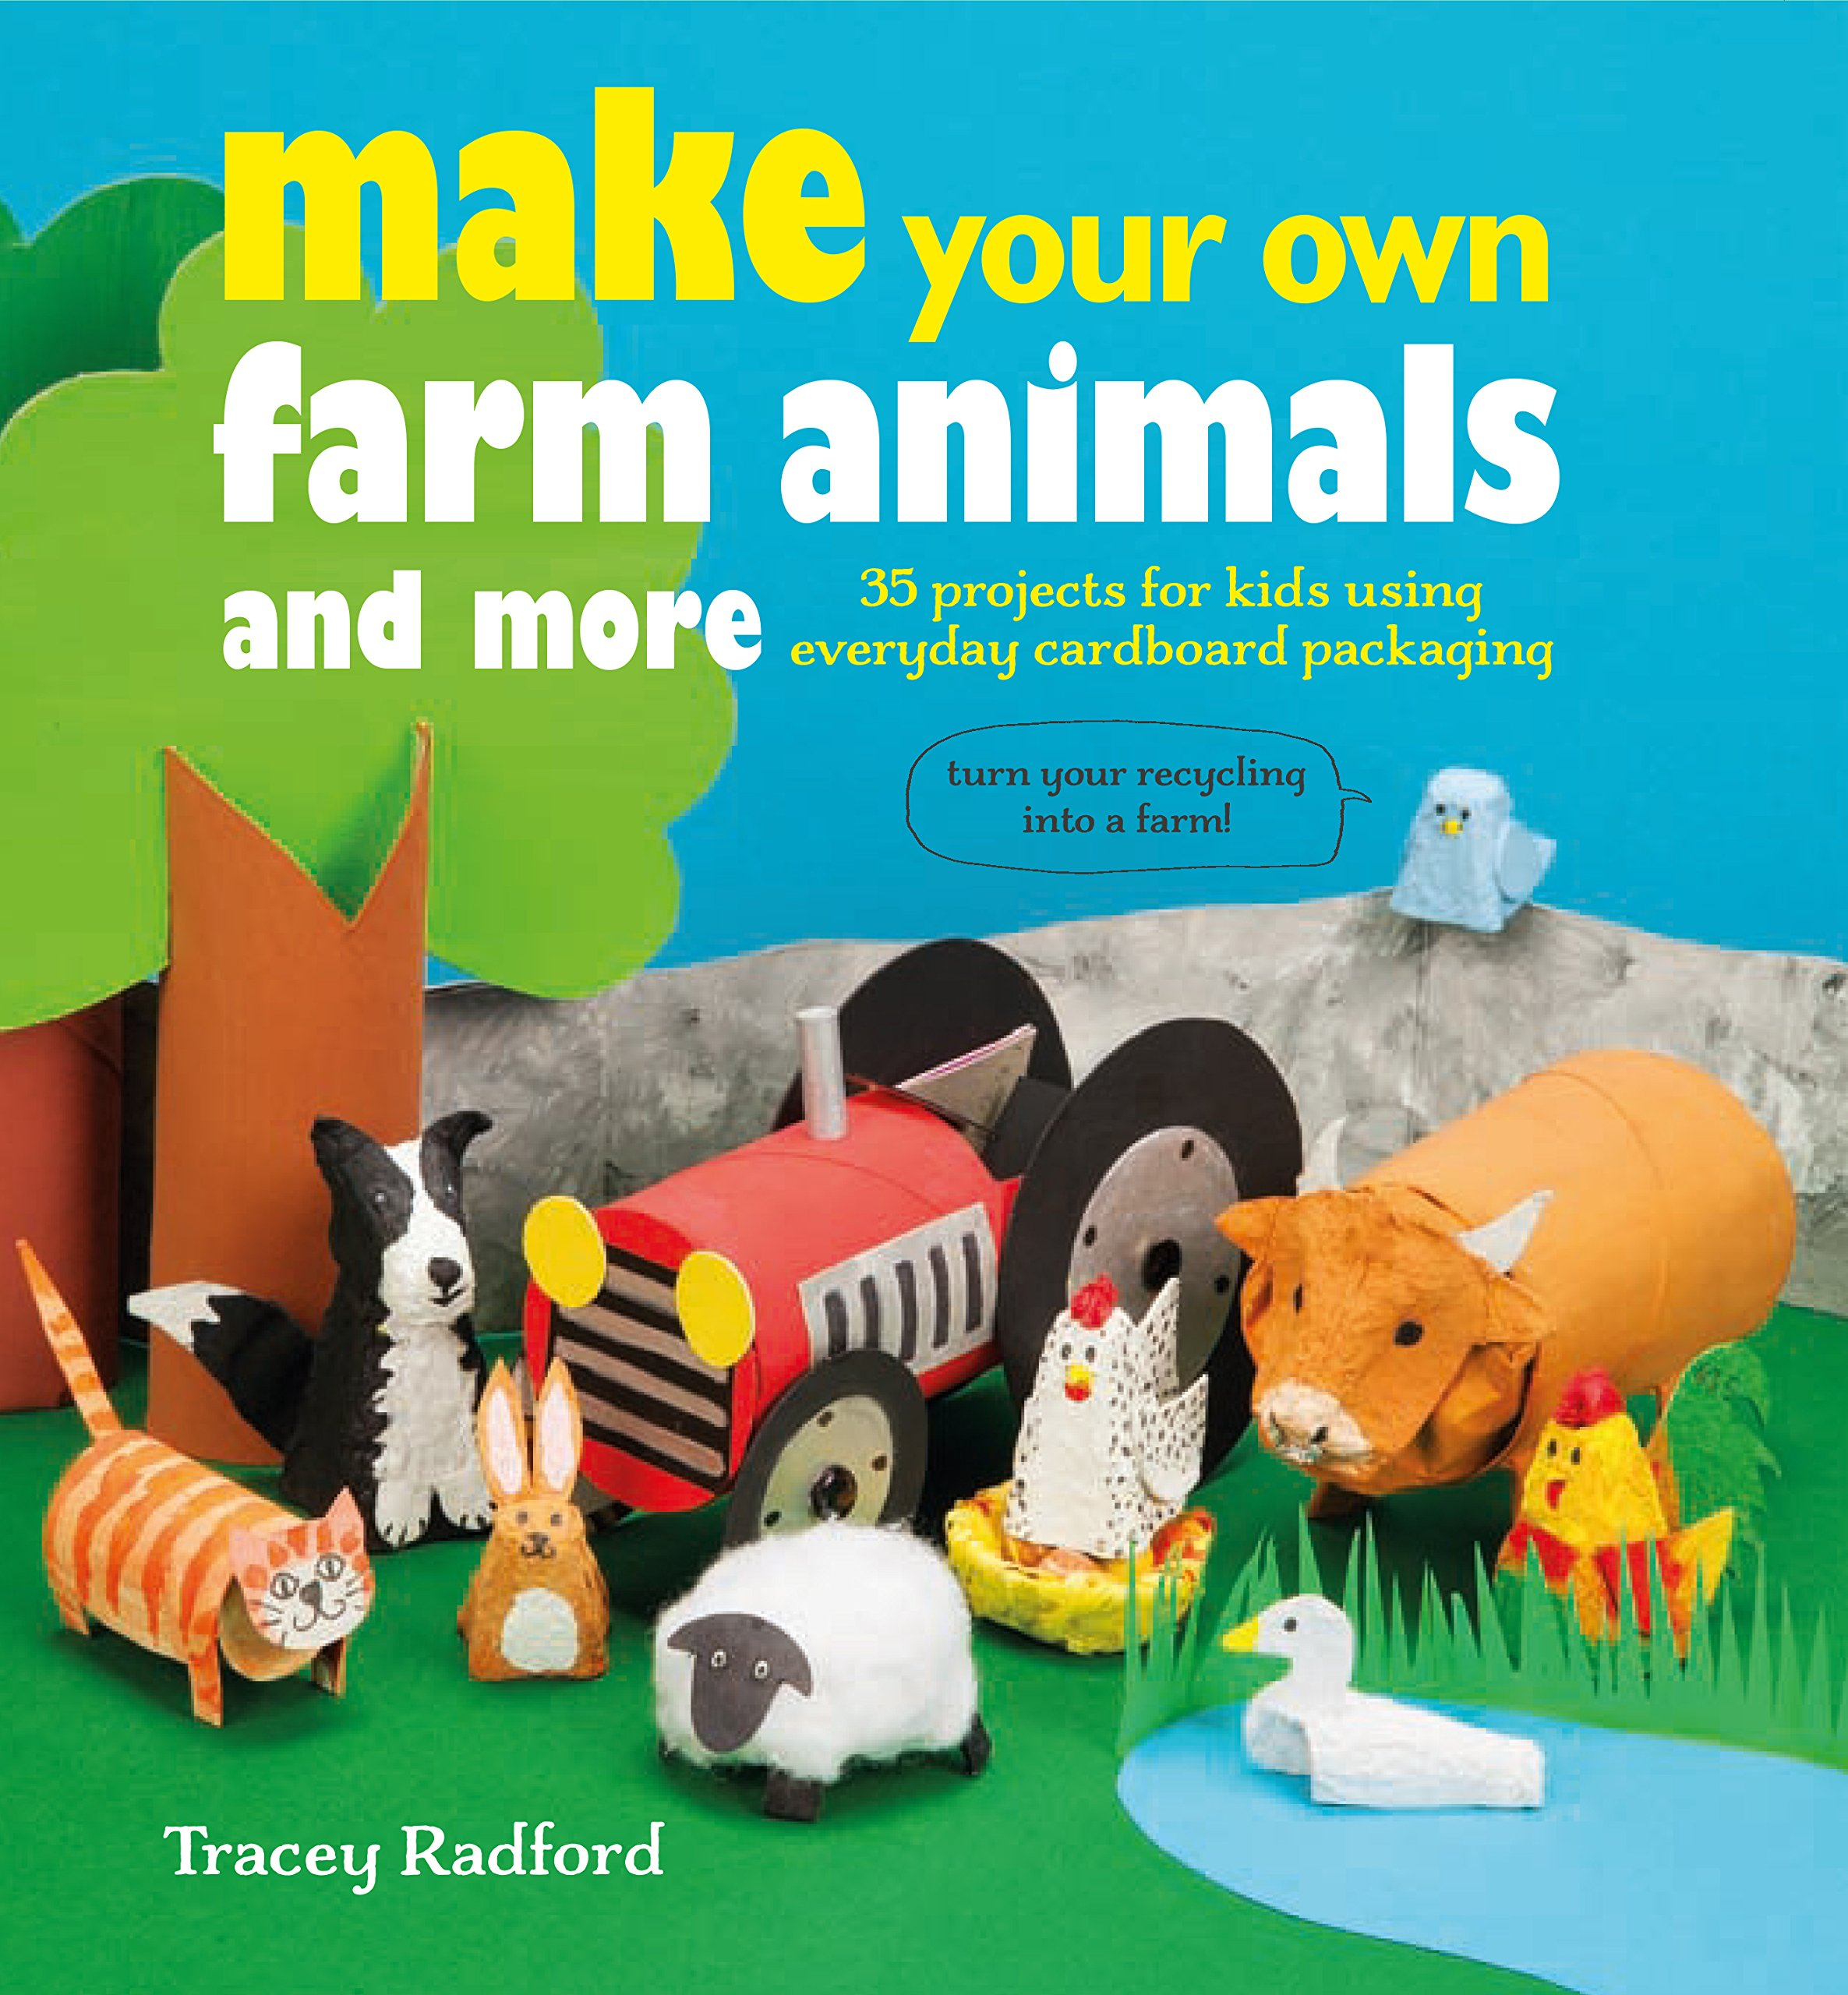 Make Your Own Farm Animals and More: 35 projects for kids using everyday cardboard packaging